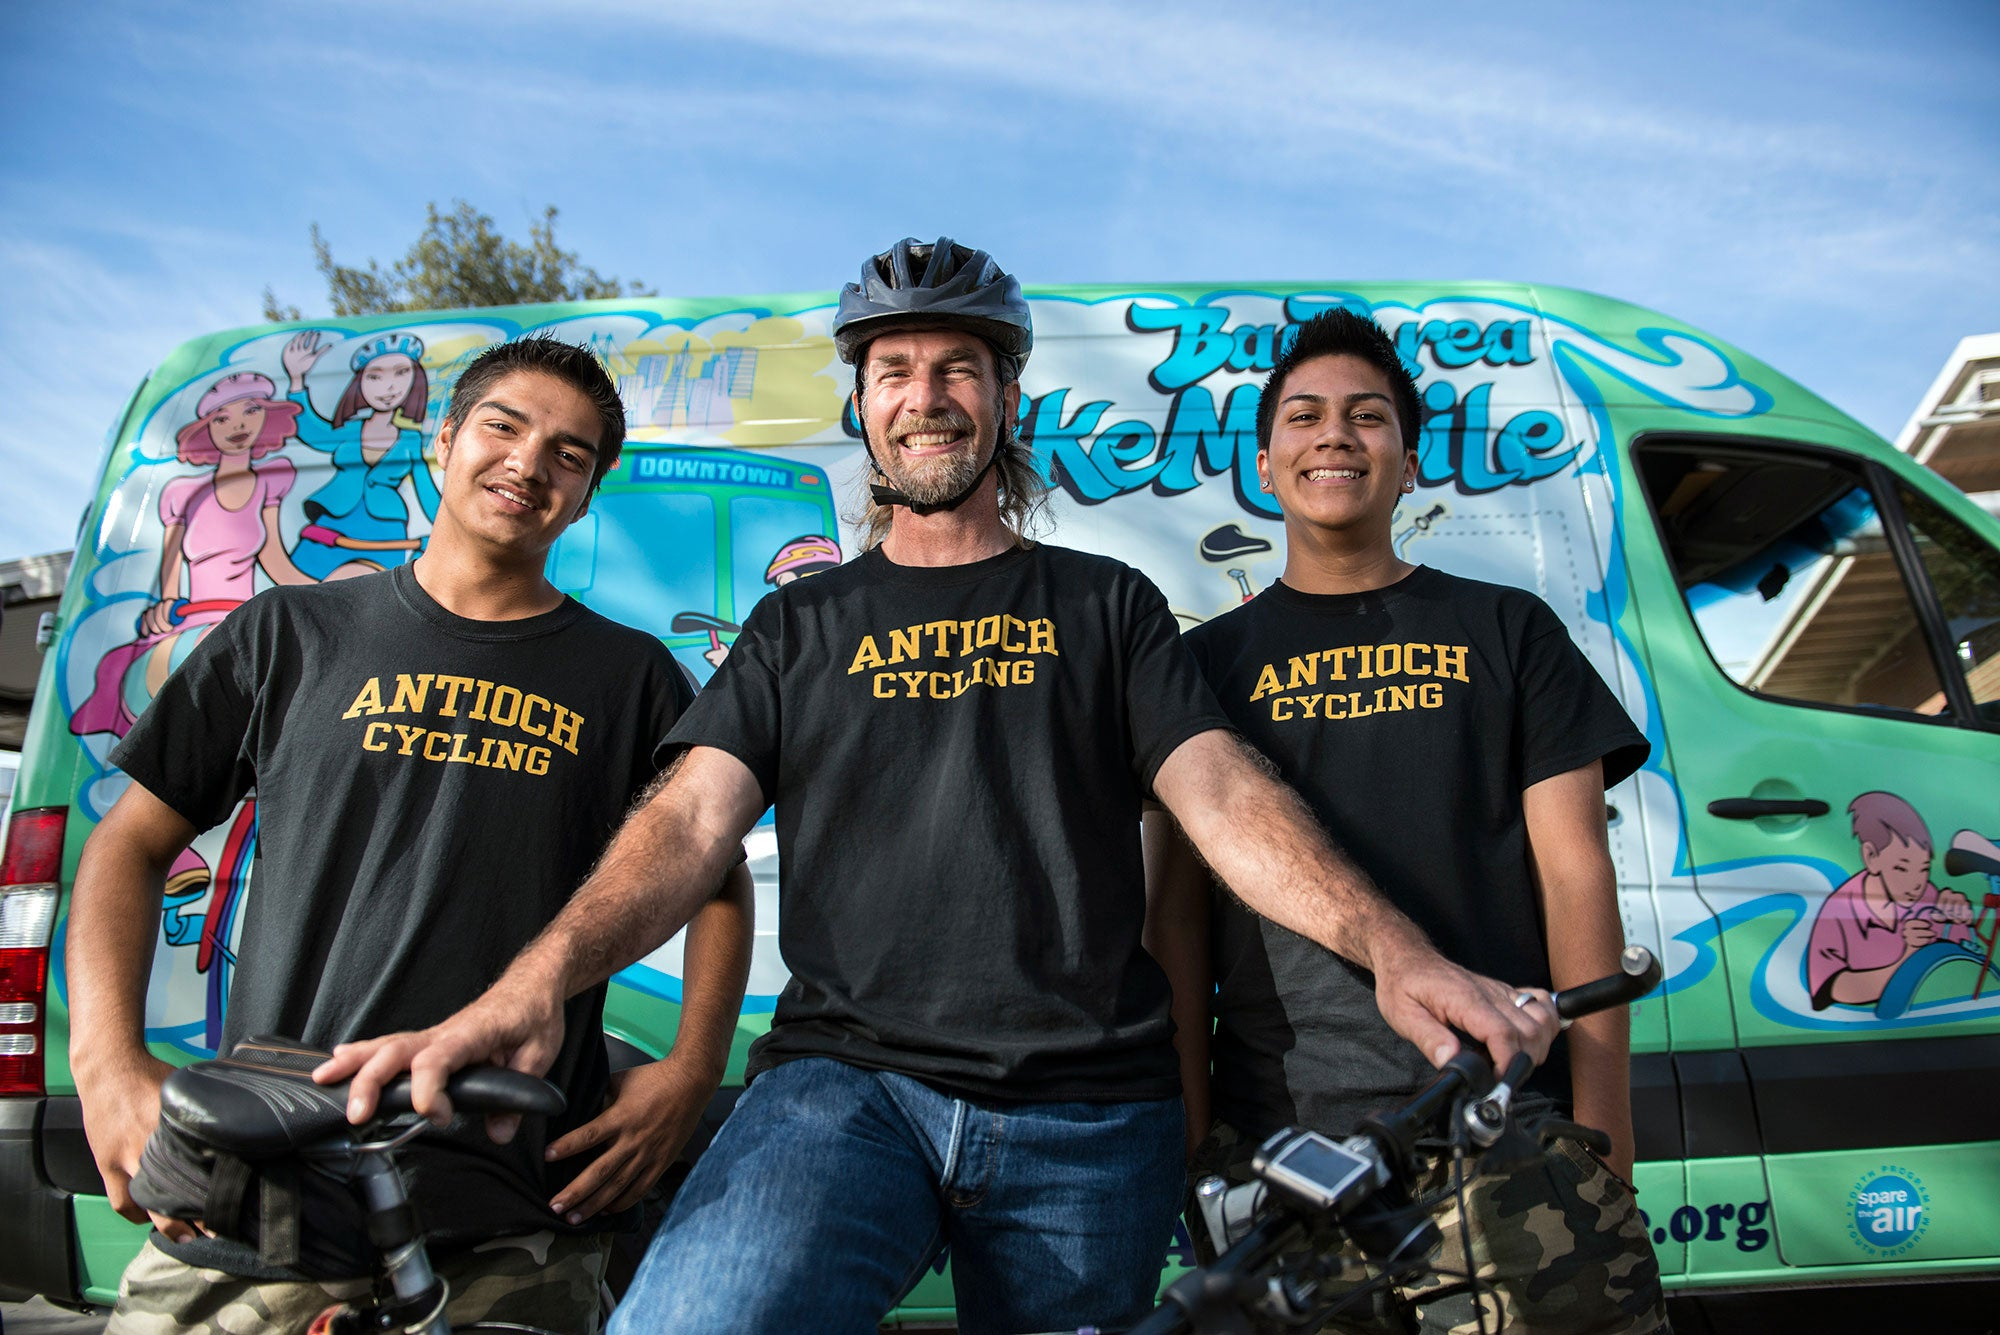 Antioch High School students on bikes